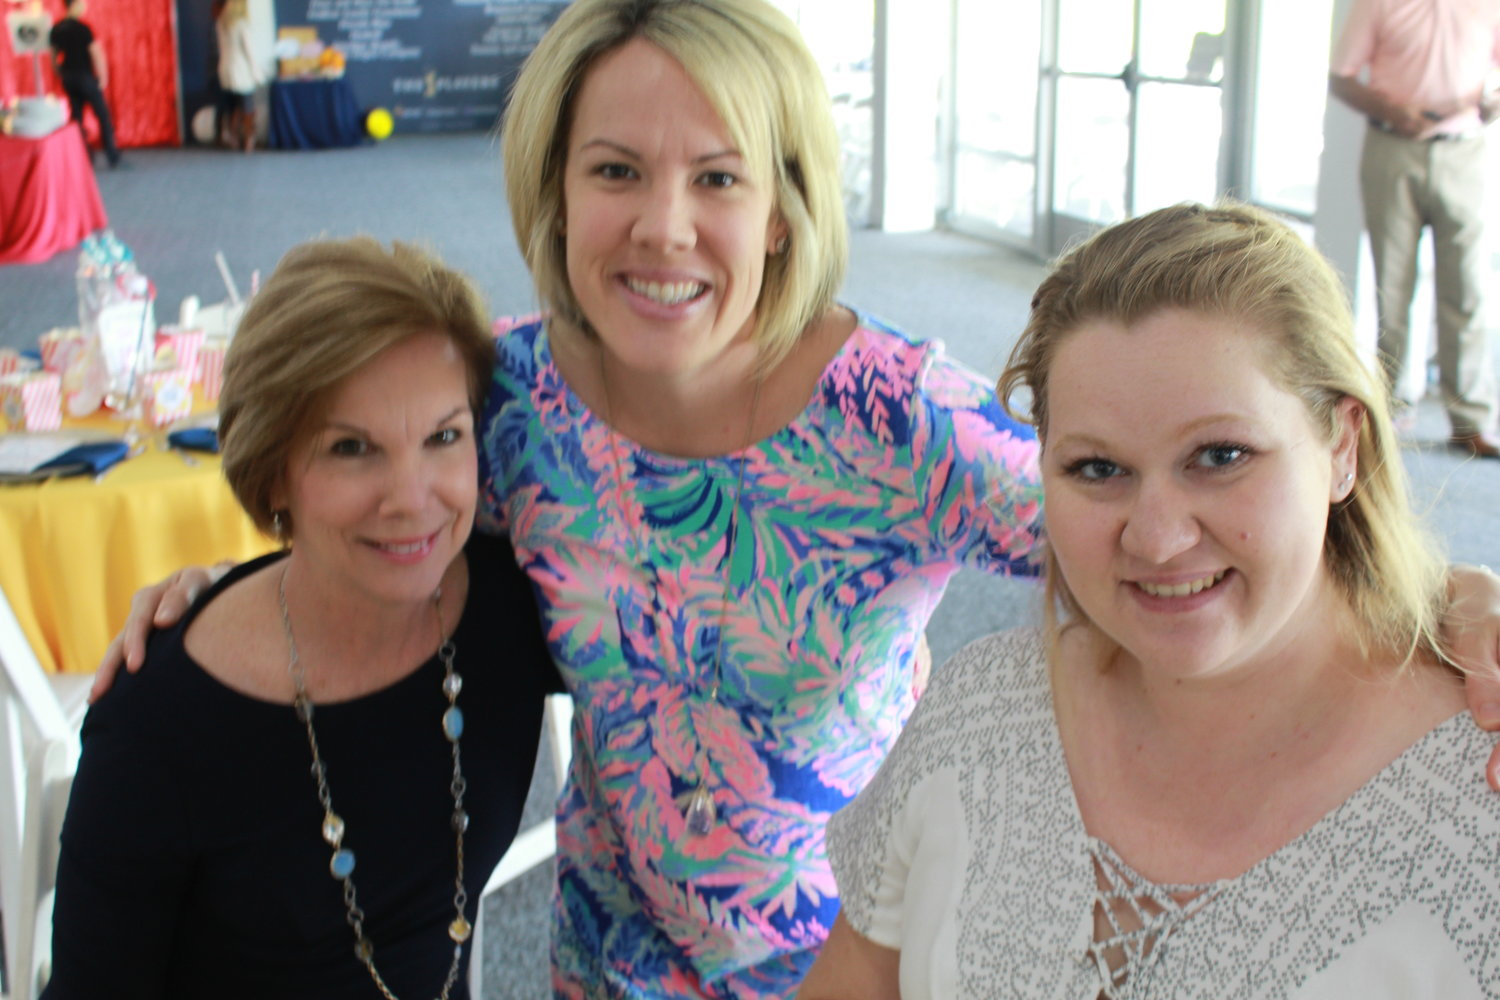 Susan Kane and Sarah Carletta gather with expectant mom Tawny Gileno at Operation Shower on March 10 at TPC Sawgrass.